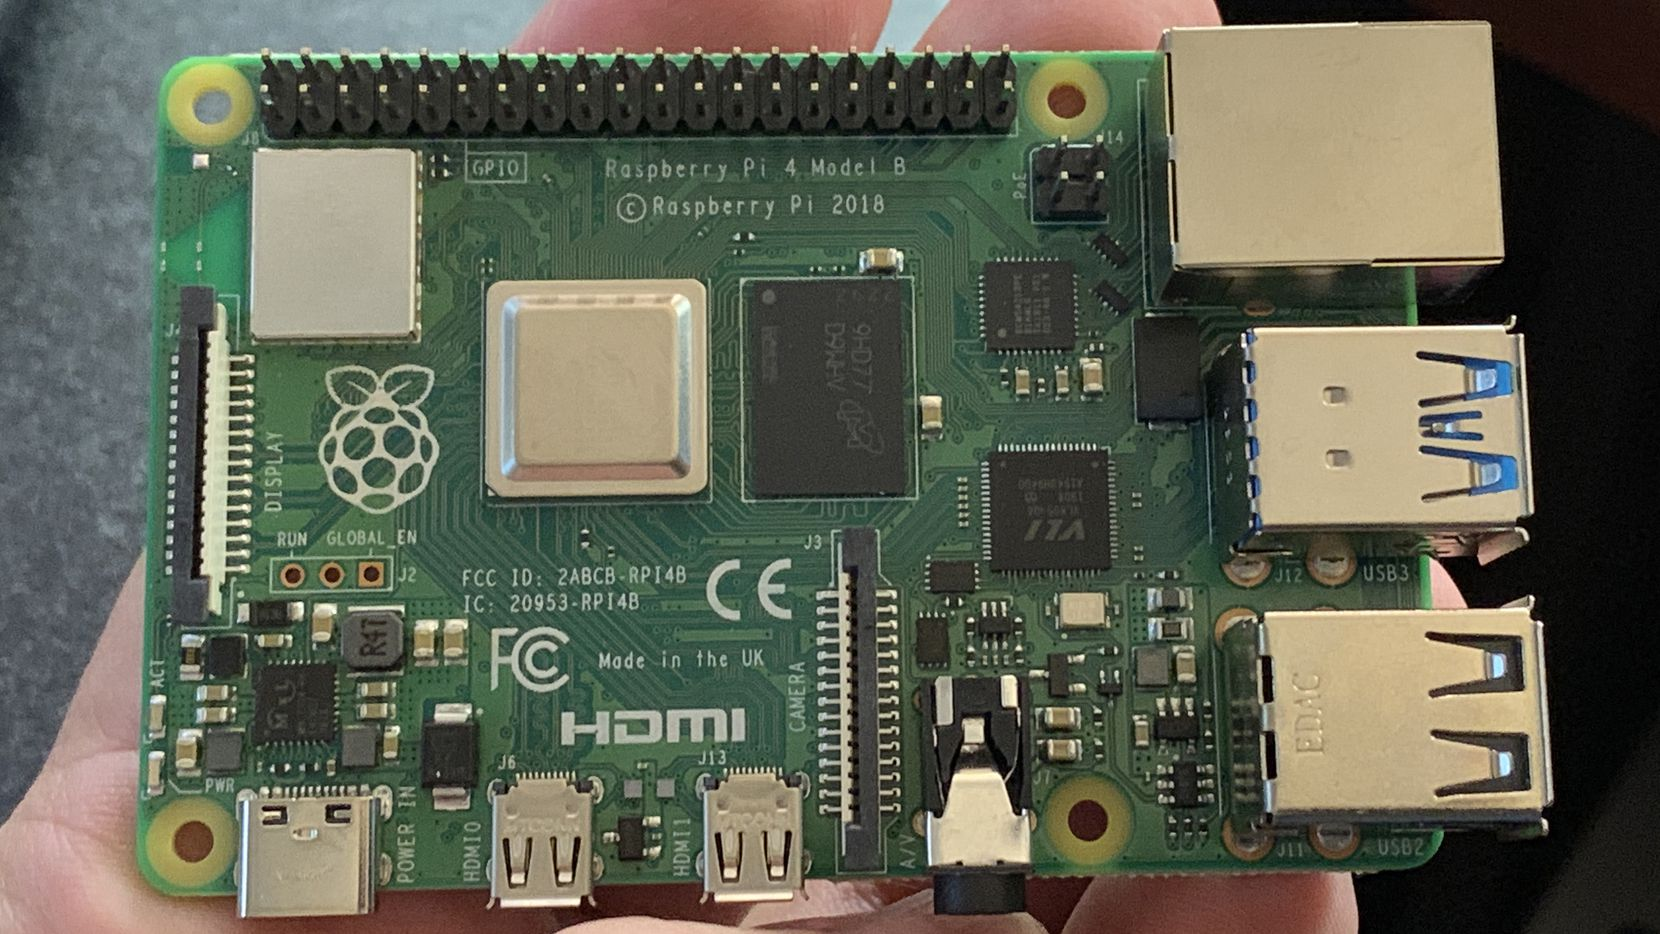 The Raspberry Pi 4